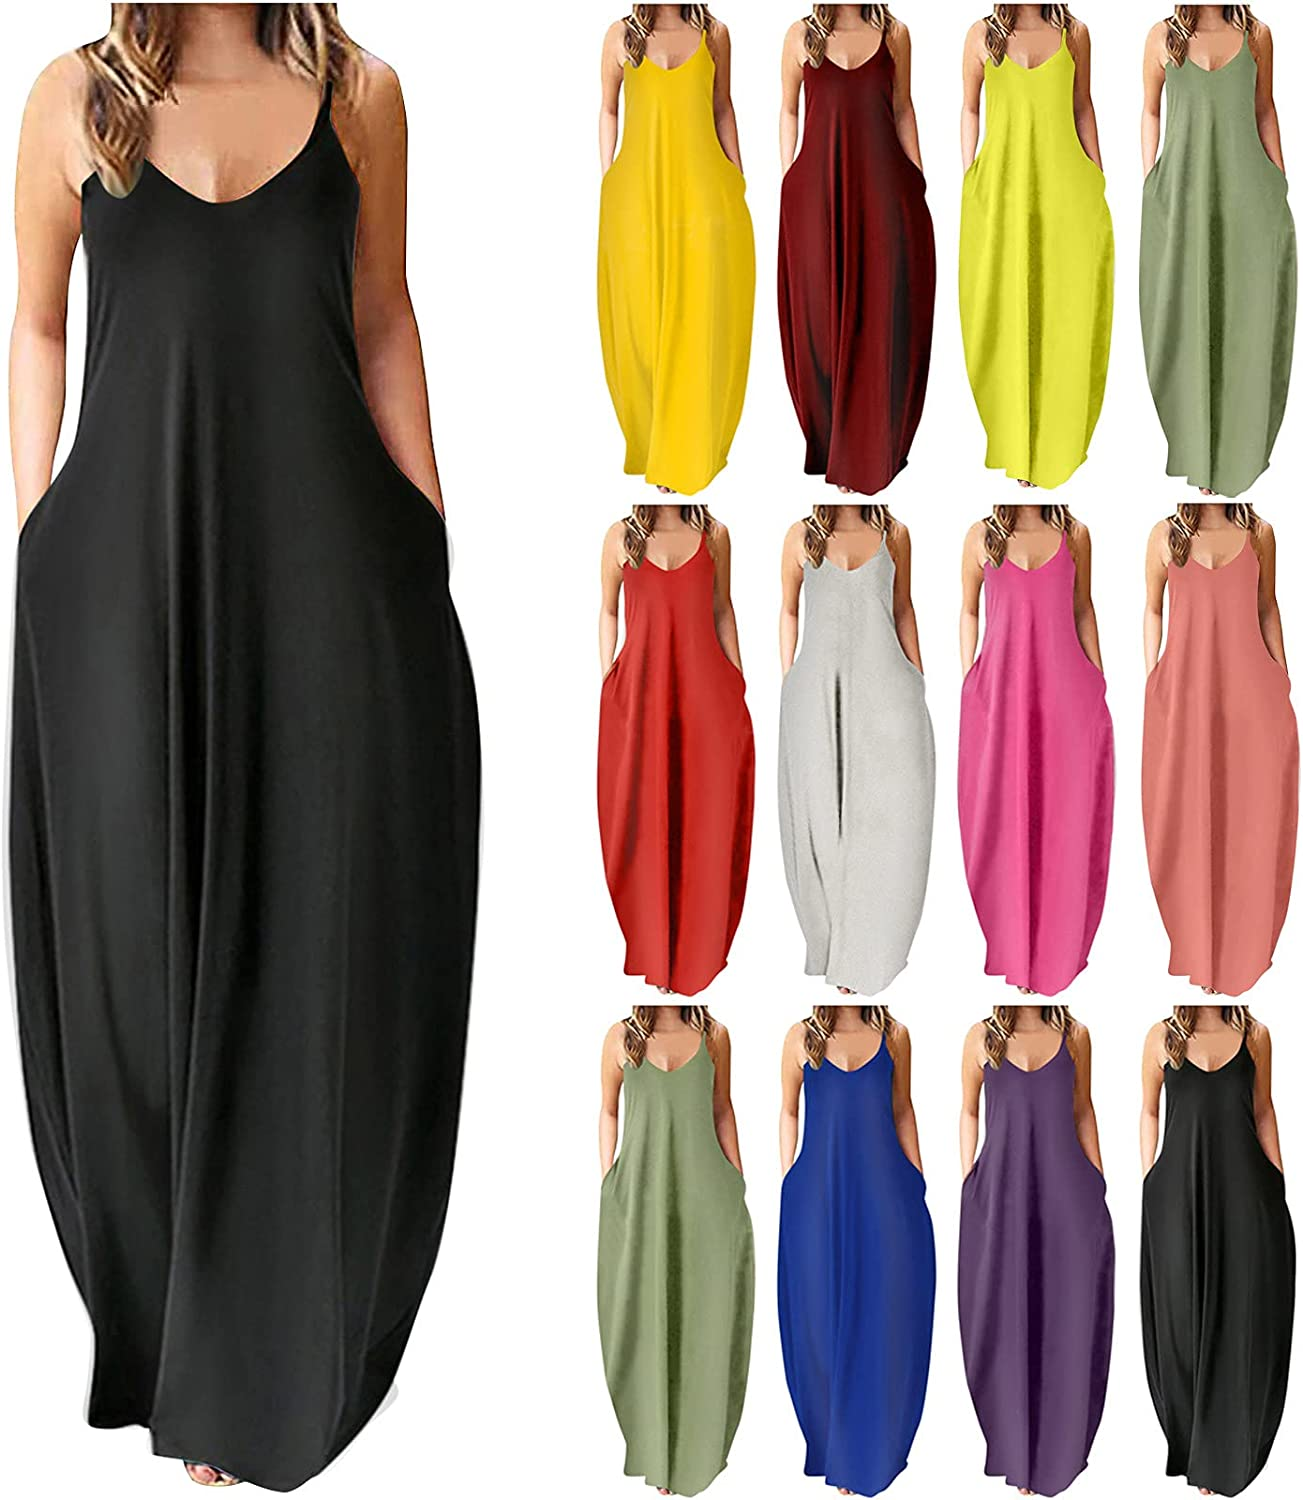 TWGONE Summer Dresses for Women Sleeveless Loose Sling Maxi Dresses Casual Plain Cami Long Dress with Pockets